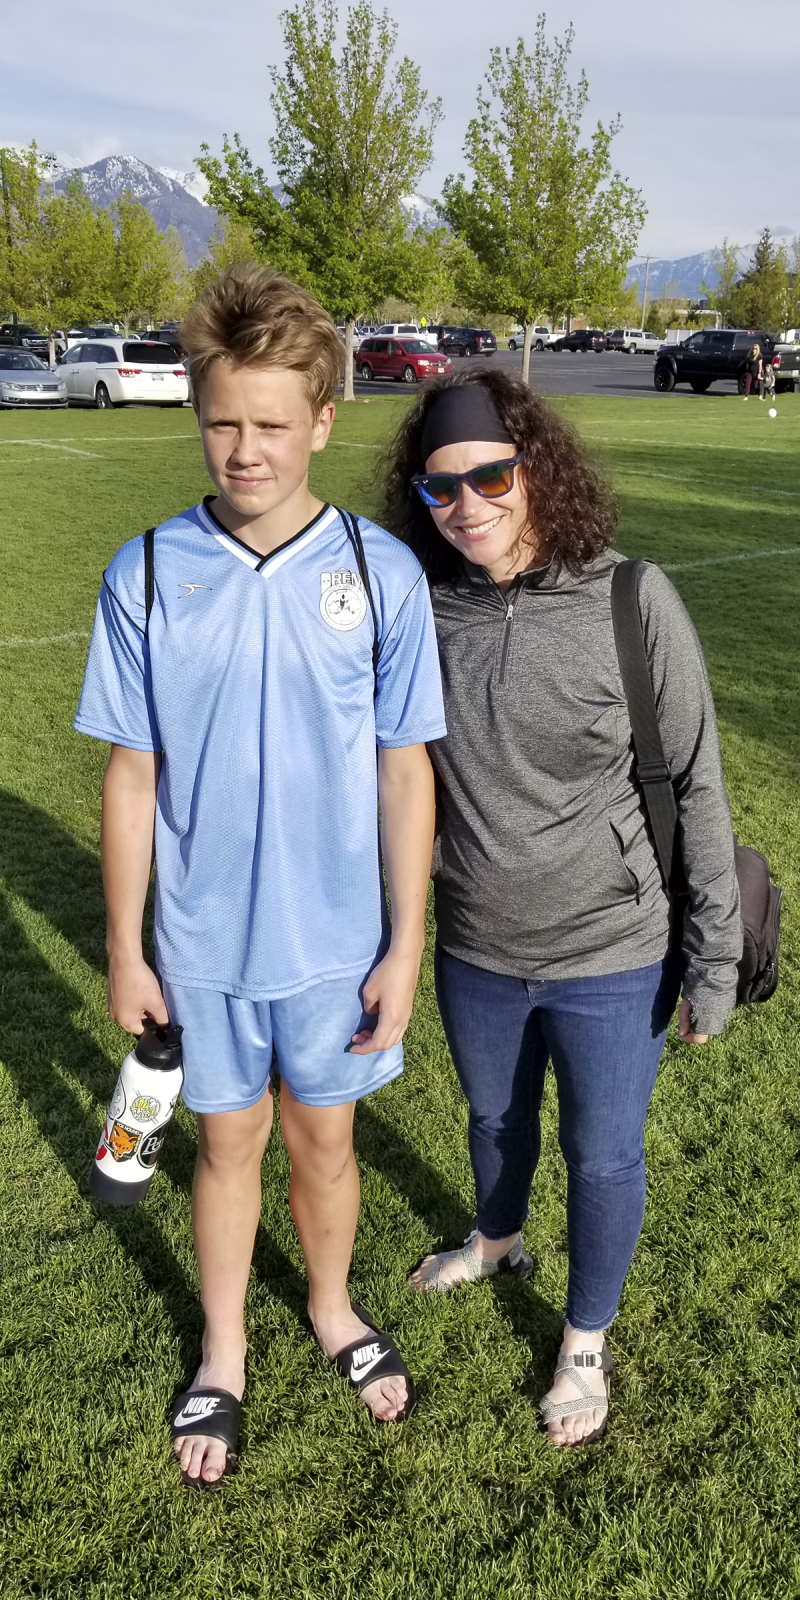 Witl 2019 amy kaleb soccer game 4x8